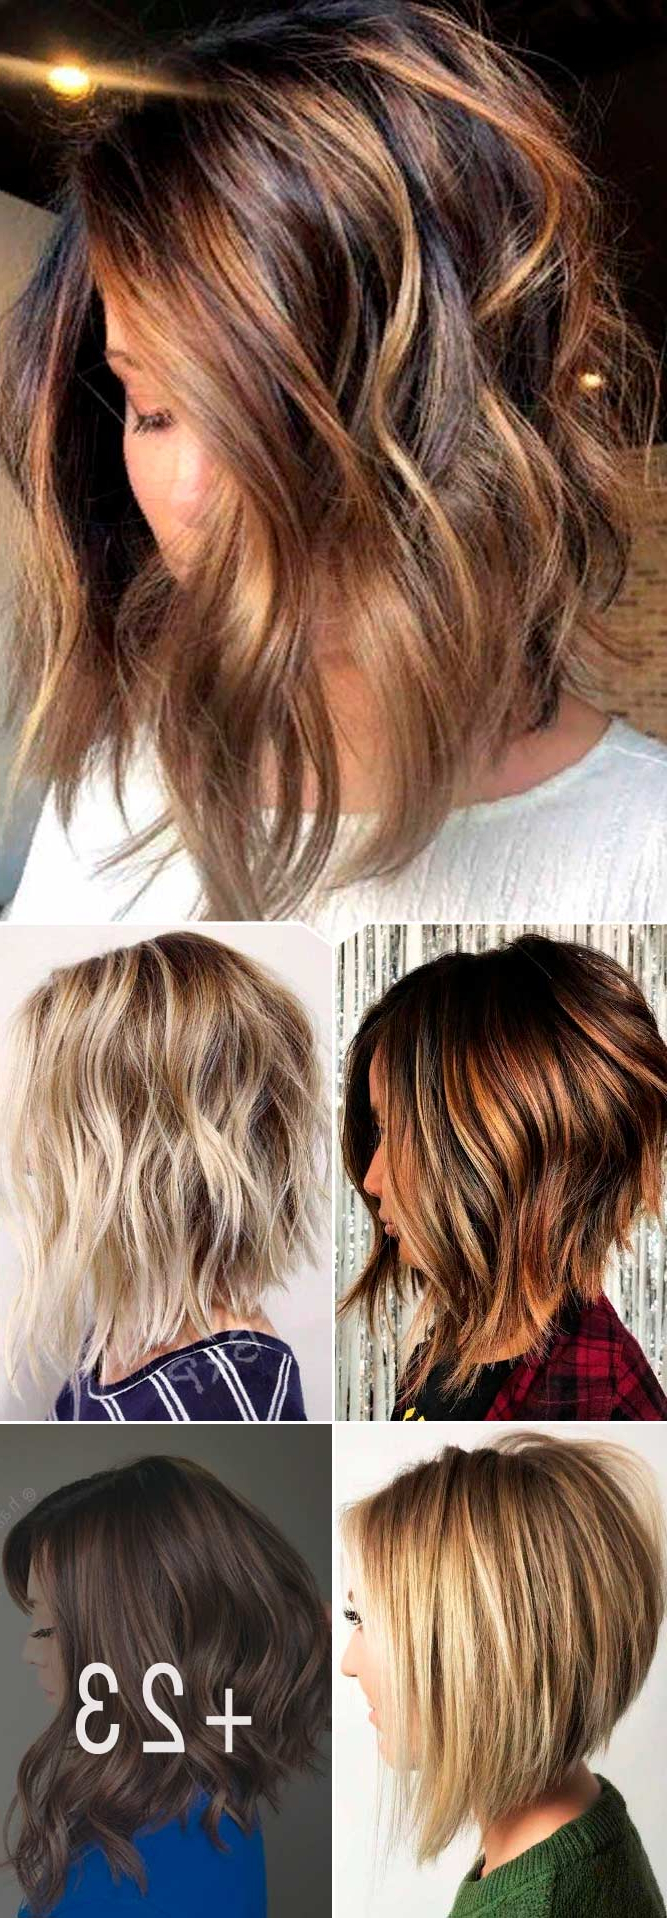 77 Ideas Of Inverted Bob Hairstyles To Refresh Your Style With Regard To Most Recently Released Long Feathered Bangs Hairstyles With Inverted Bob (View 10 of 20)